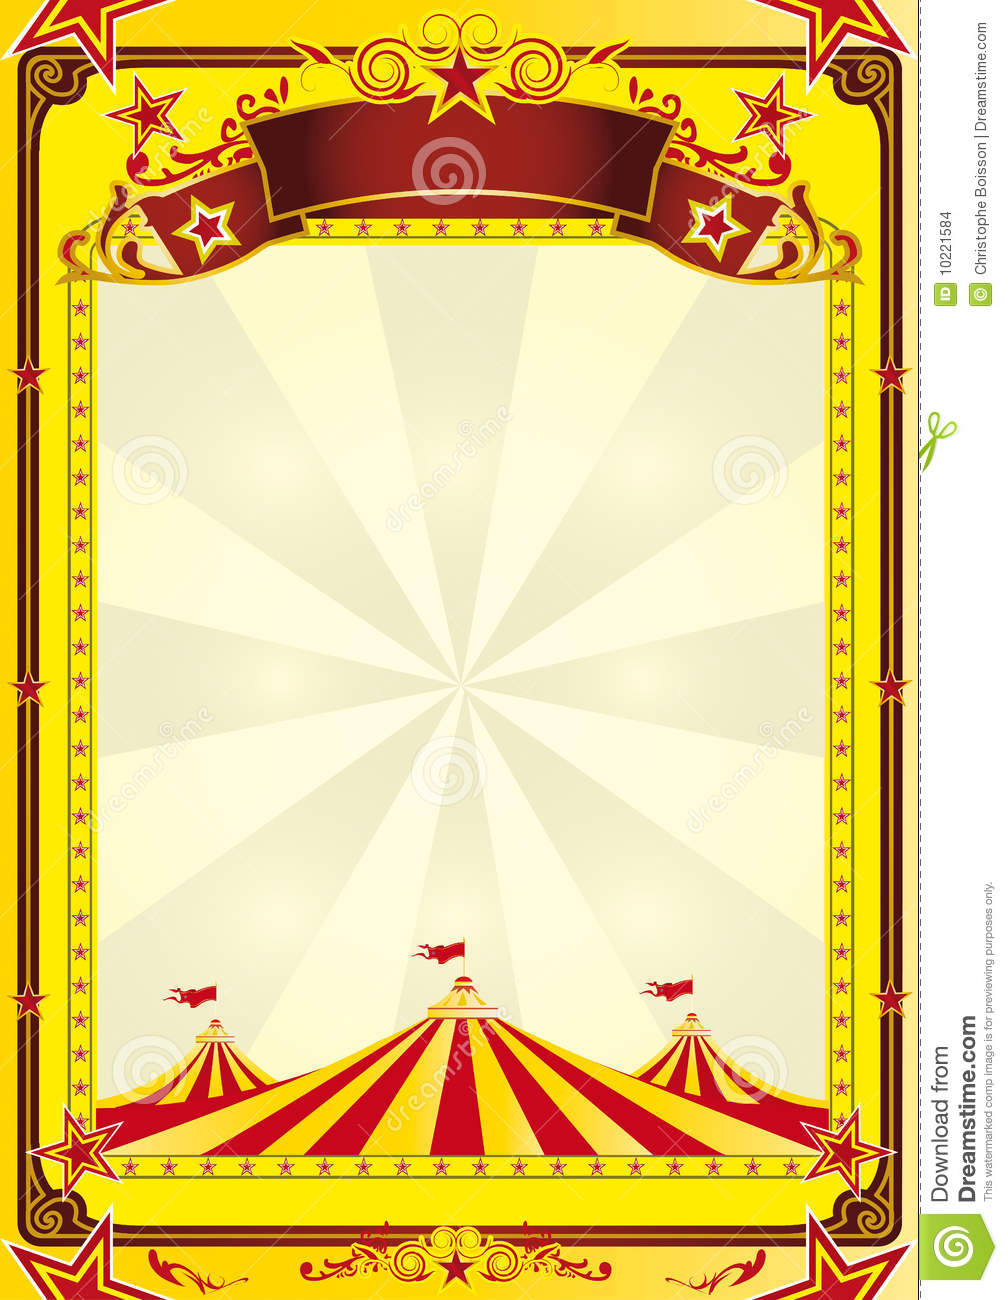 circus flyer background - photo #3